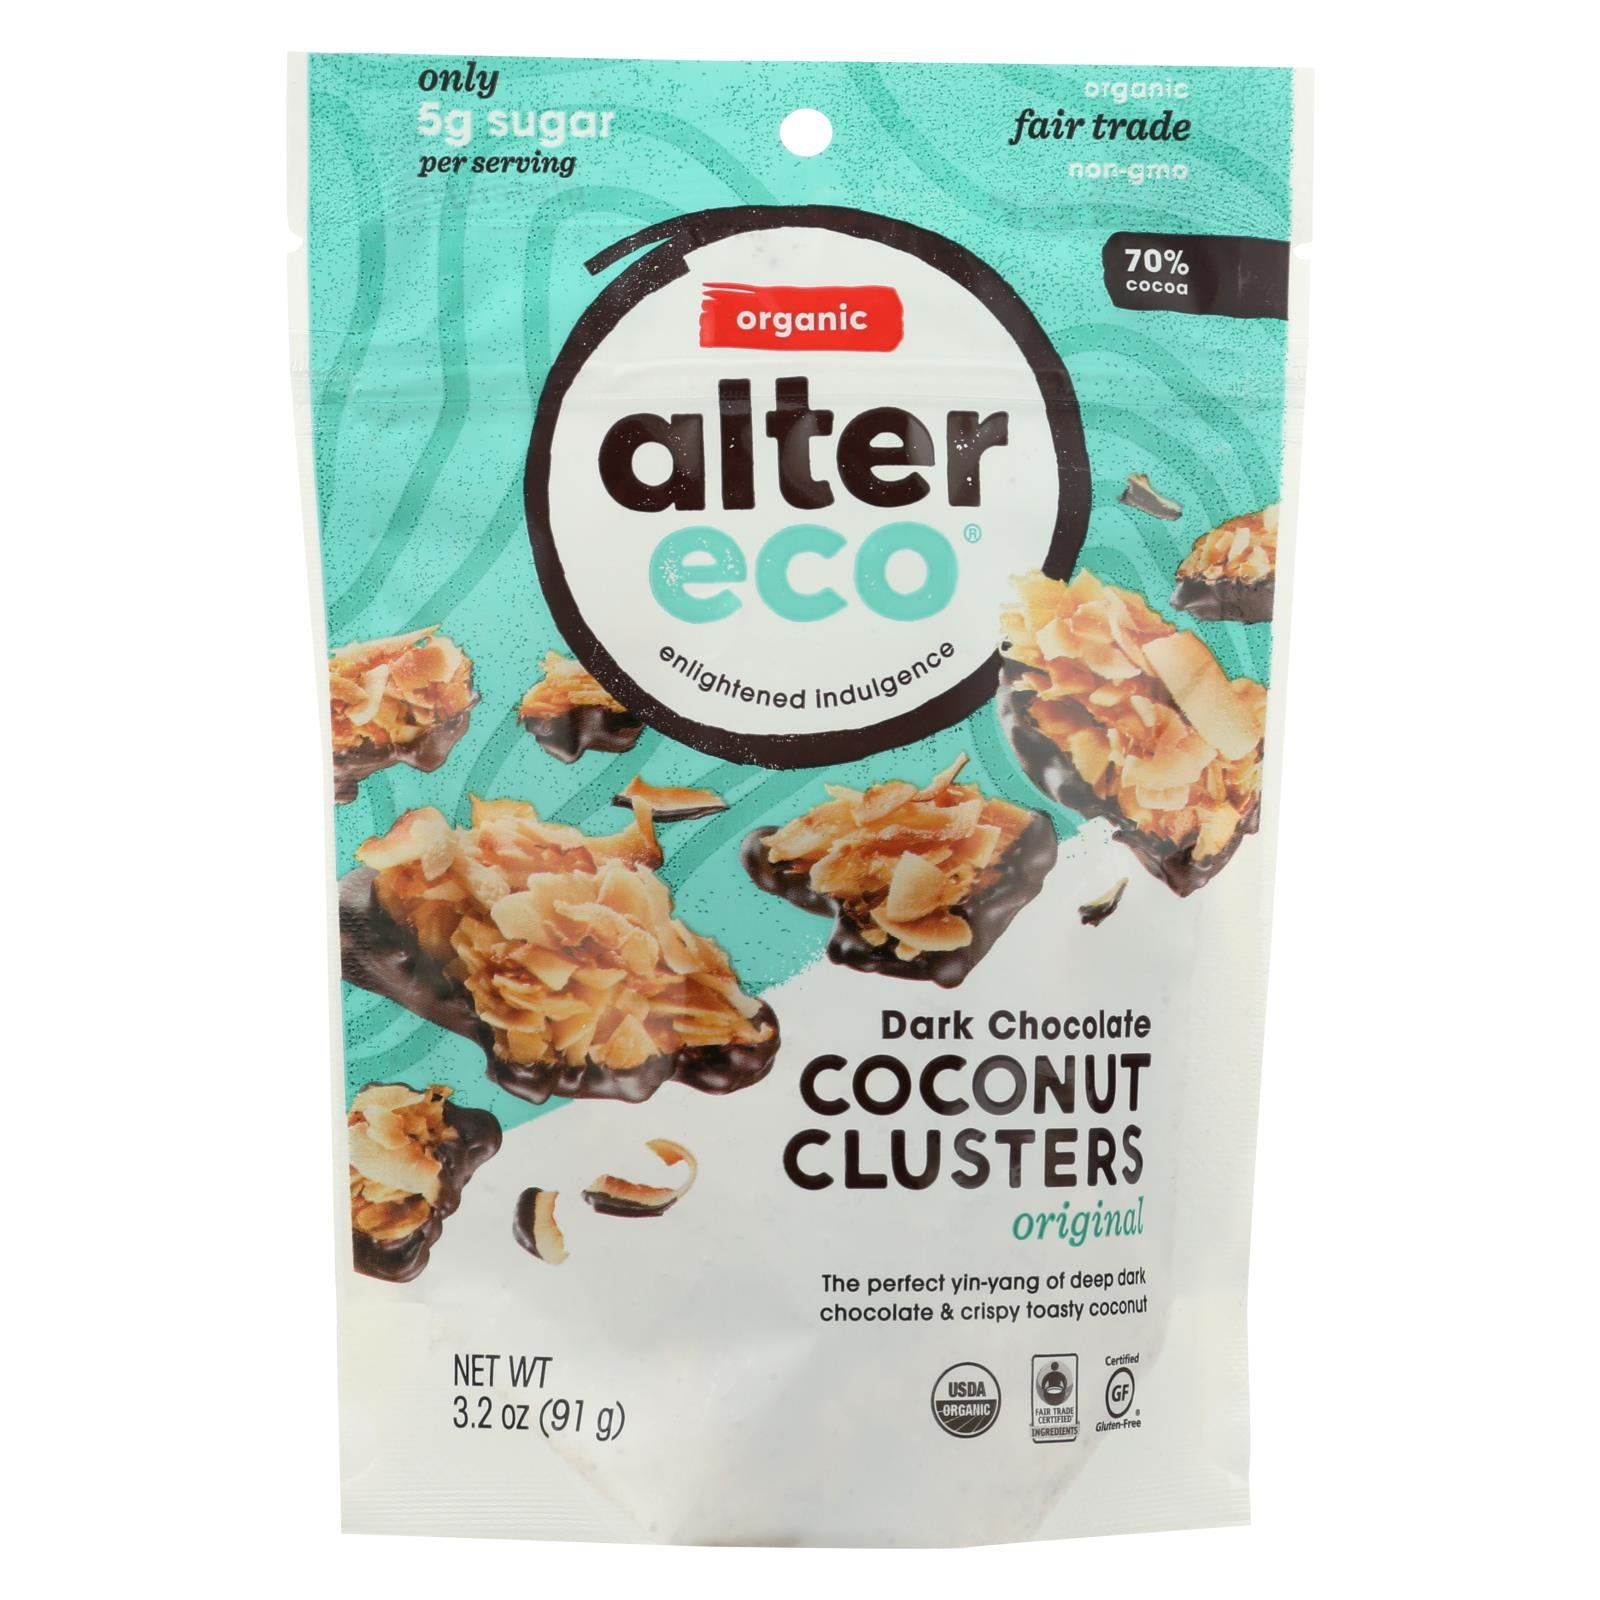 Alter Eco Original Coconut Clusters